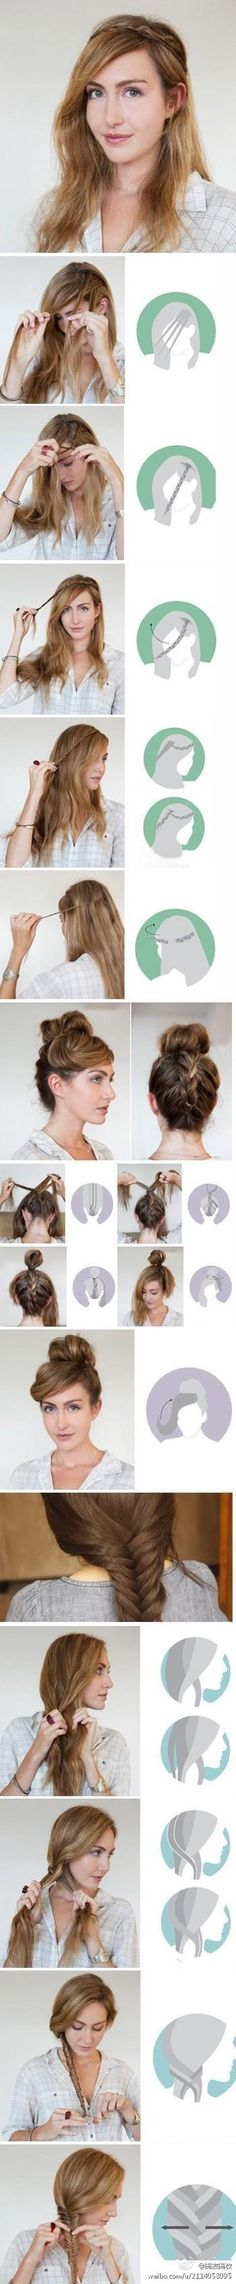 Hair tutorials.